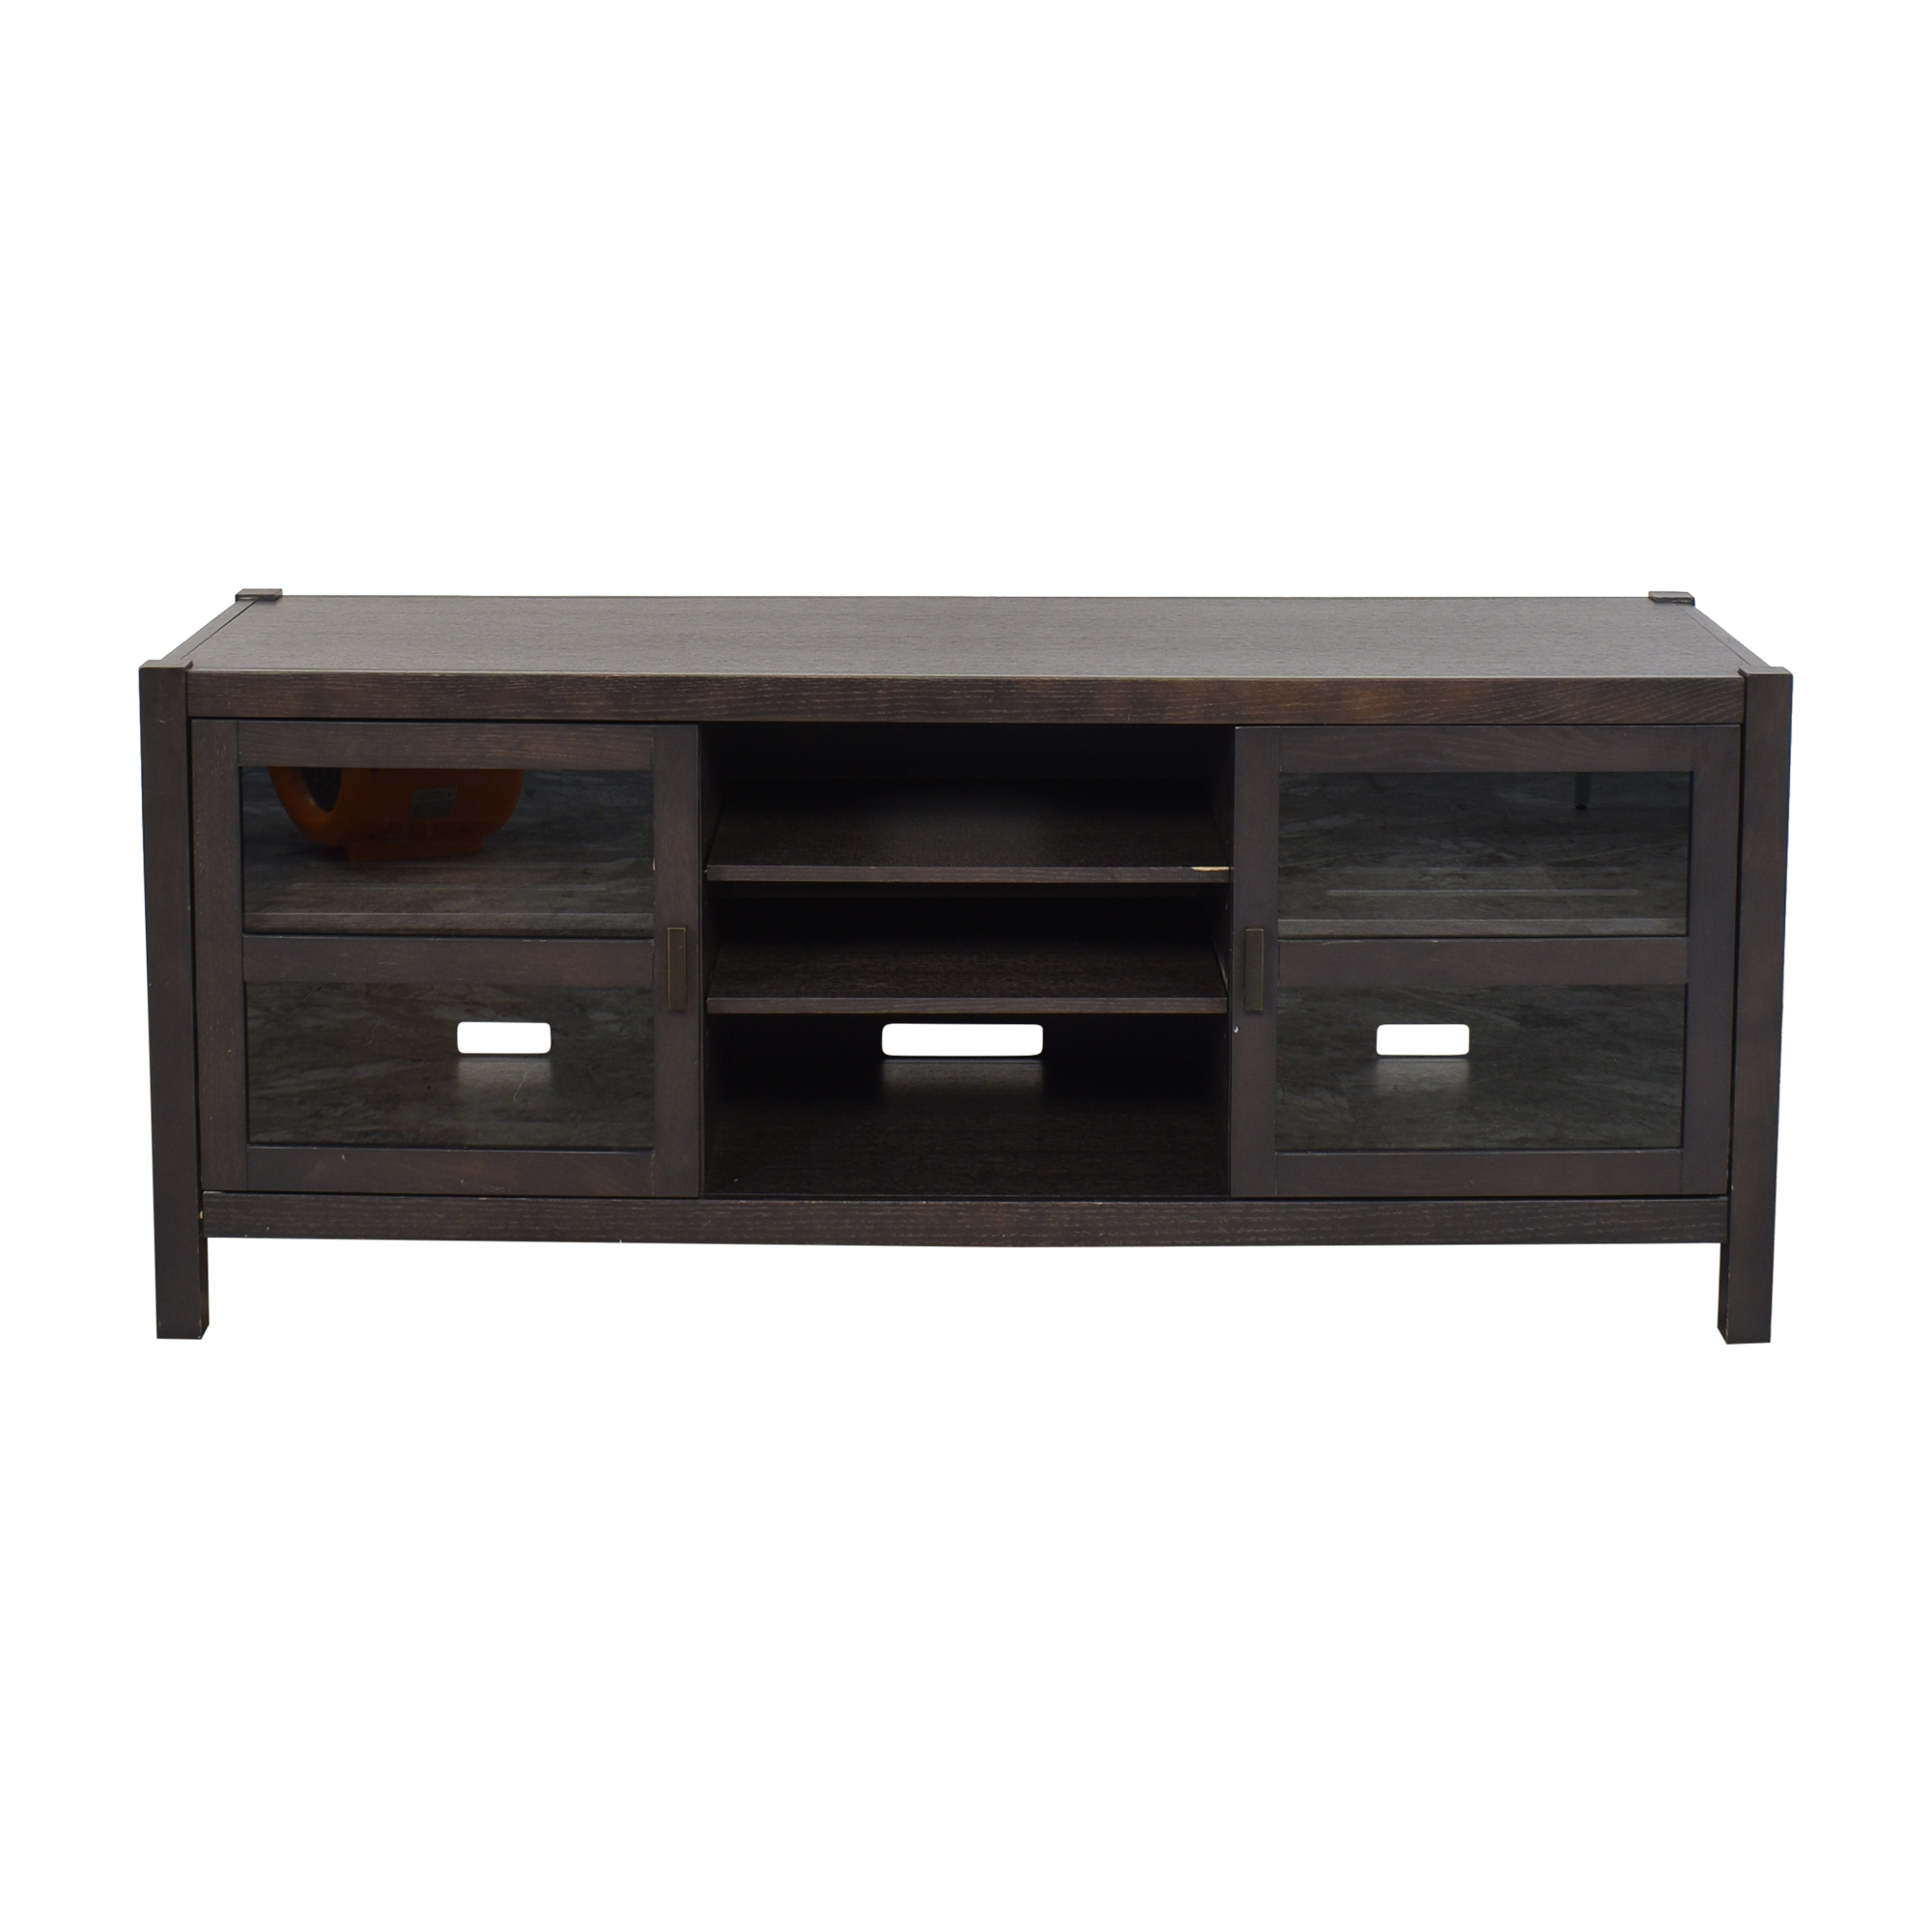 Crate & Barrel Modern Media Console / Storage